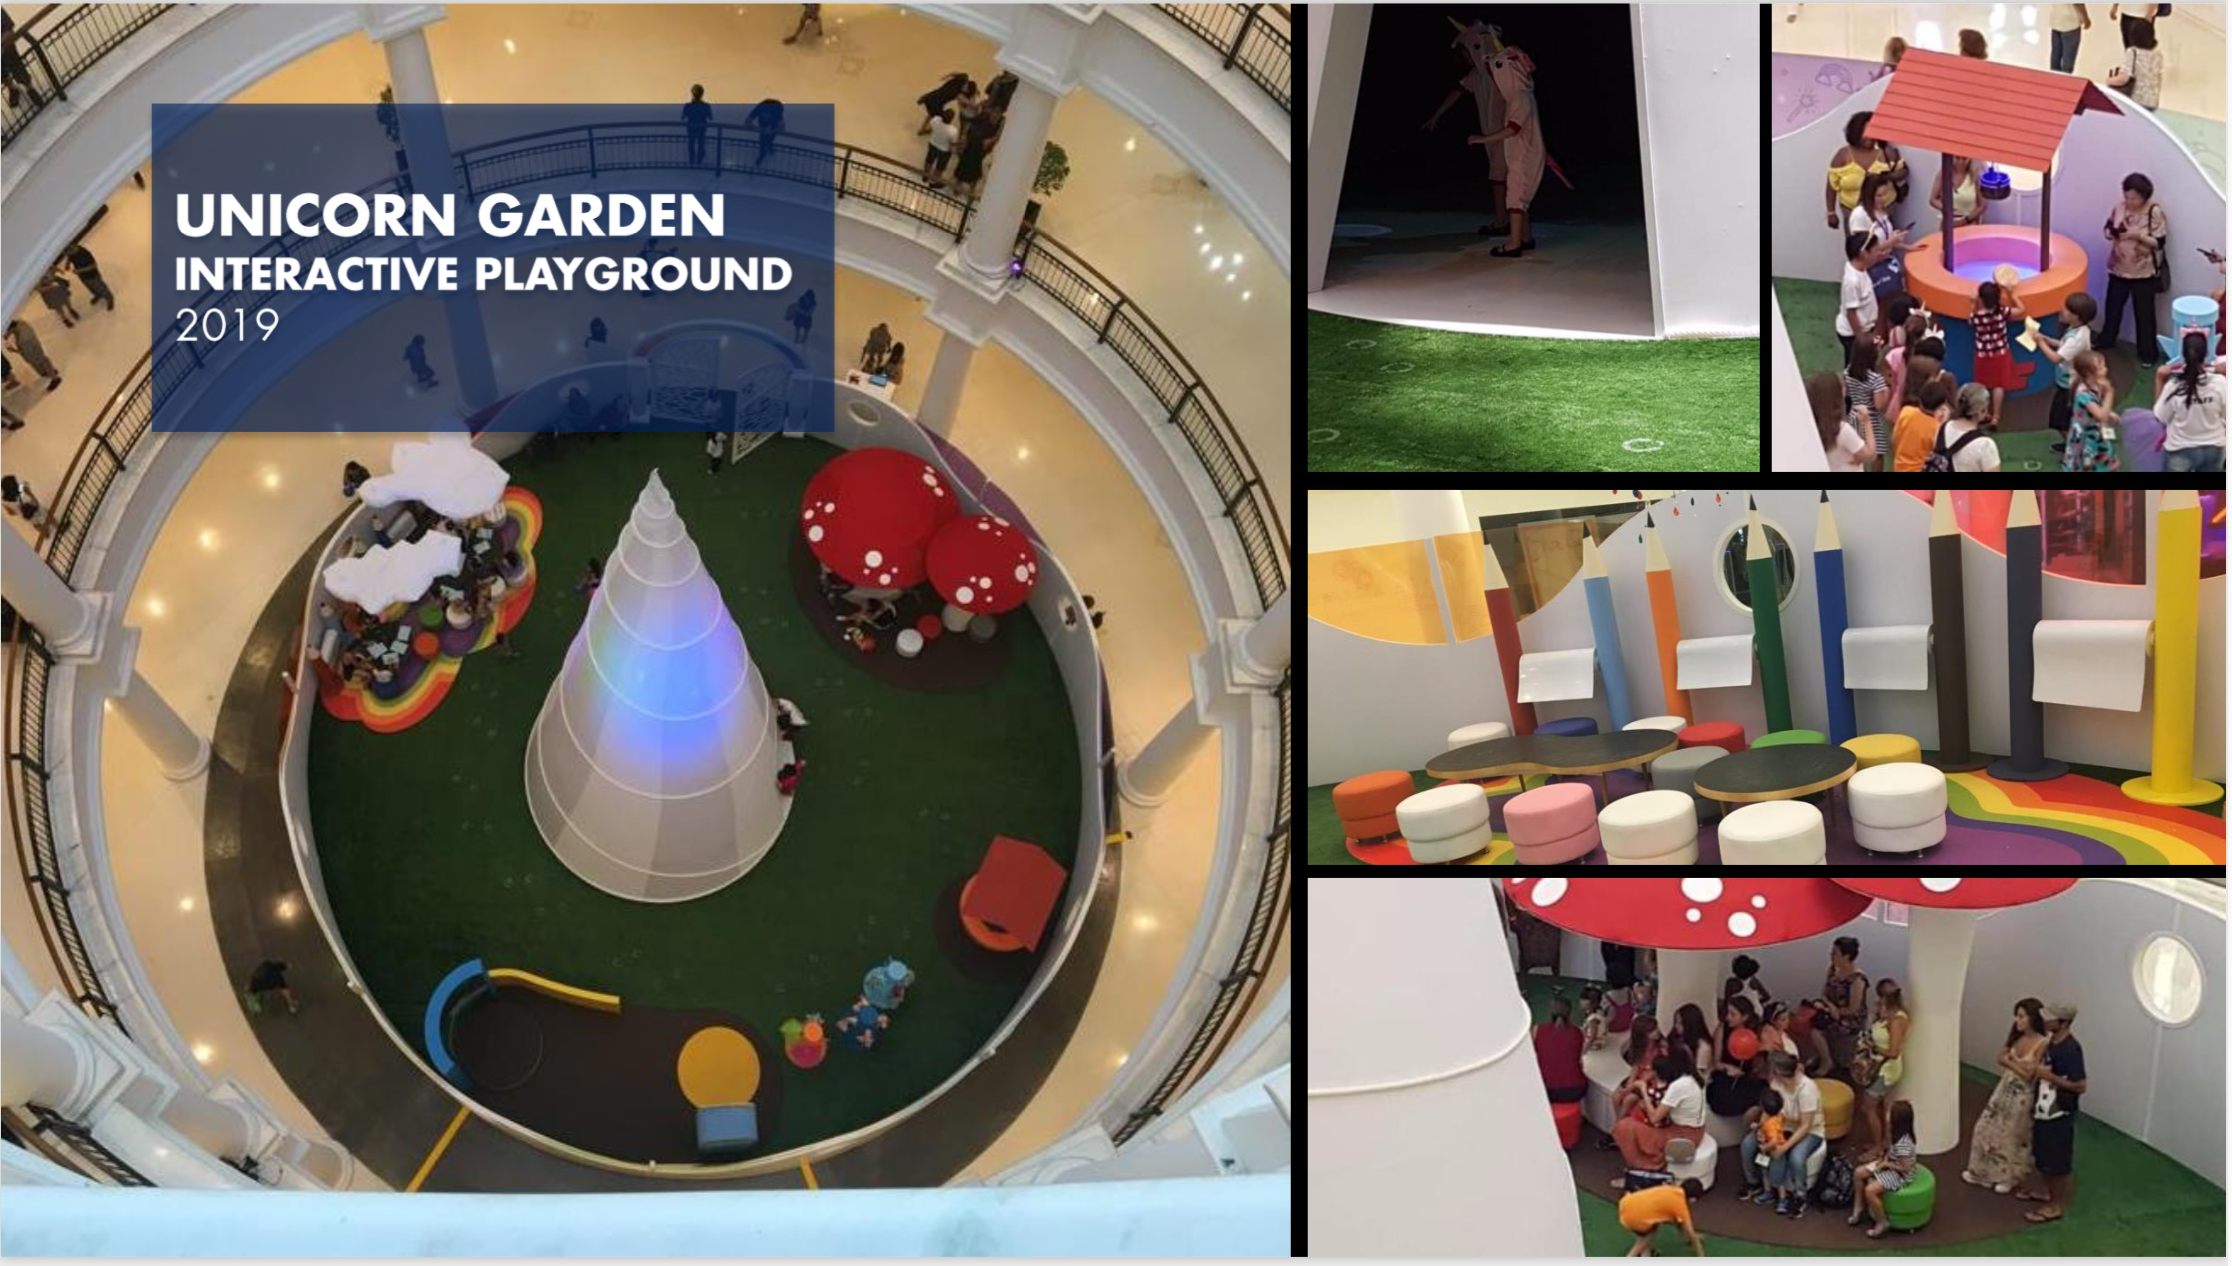 Unicorn Garden Interactive Playground